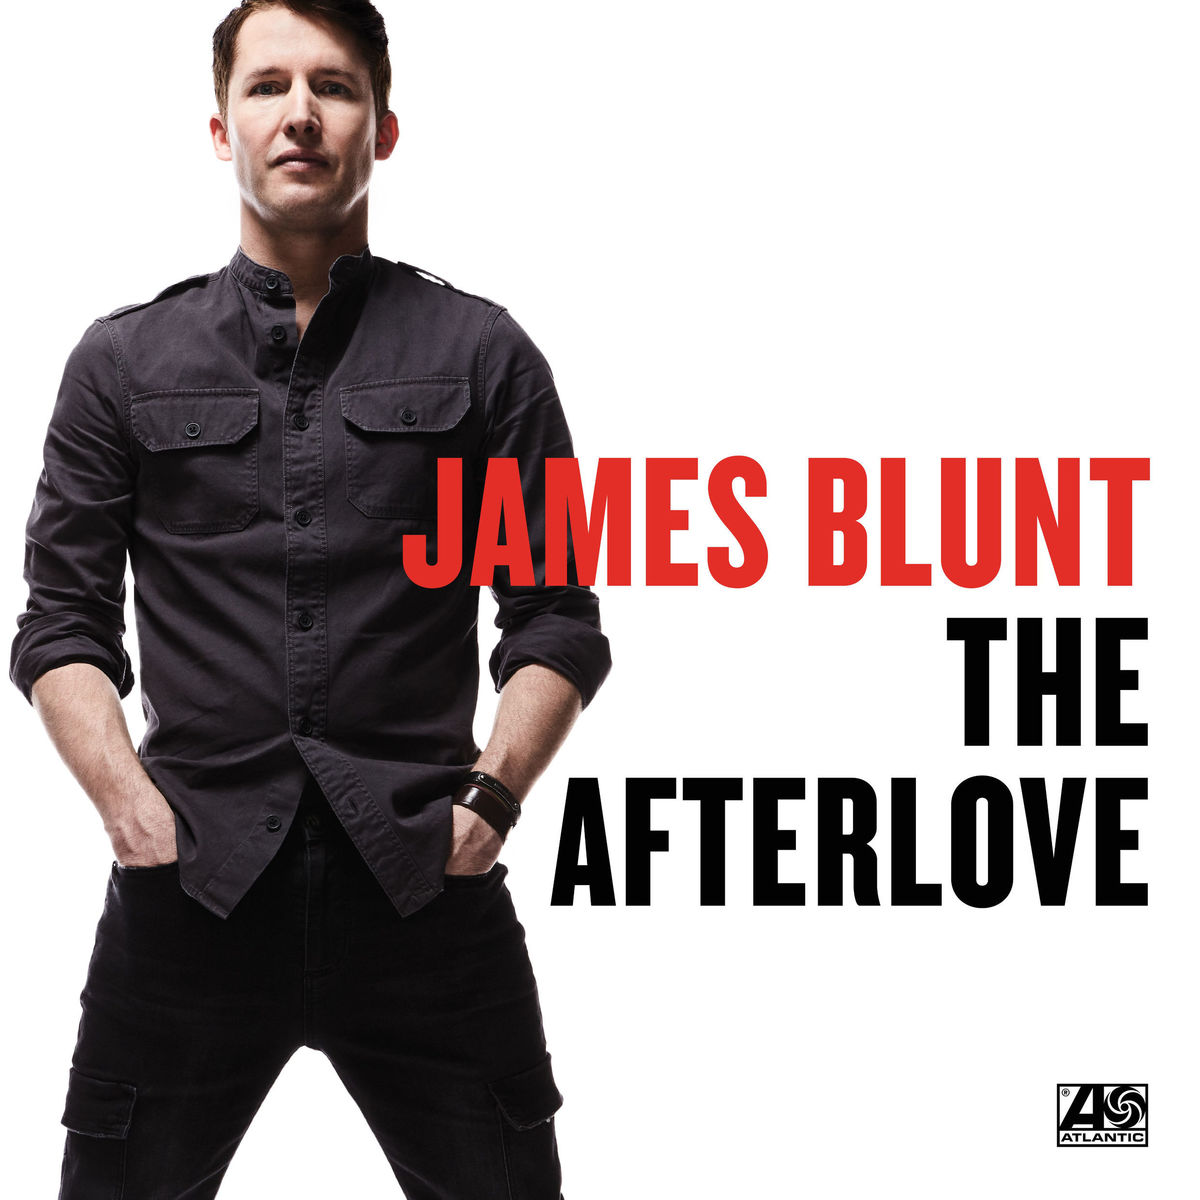 Articlehome james blunt the afterlove 2017 2480x2480